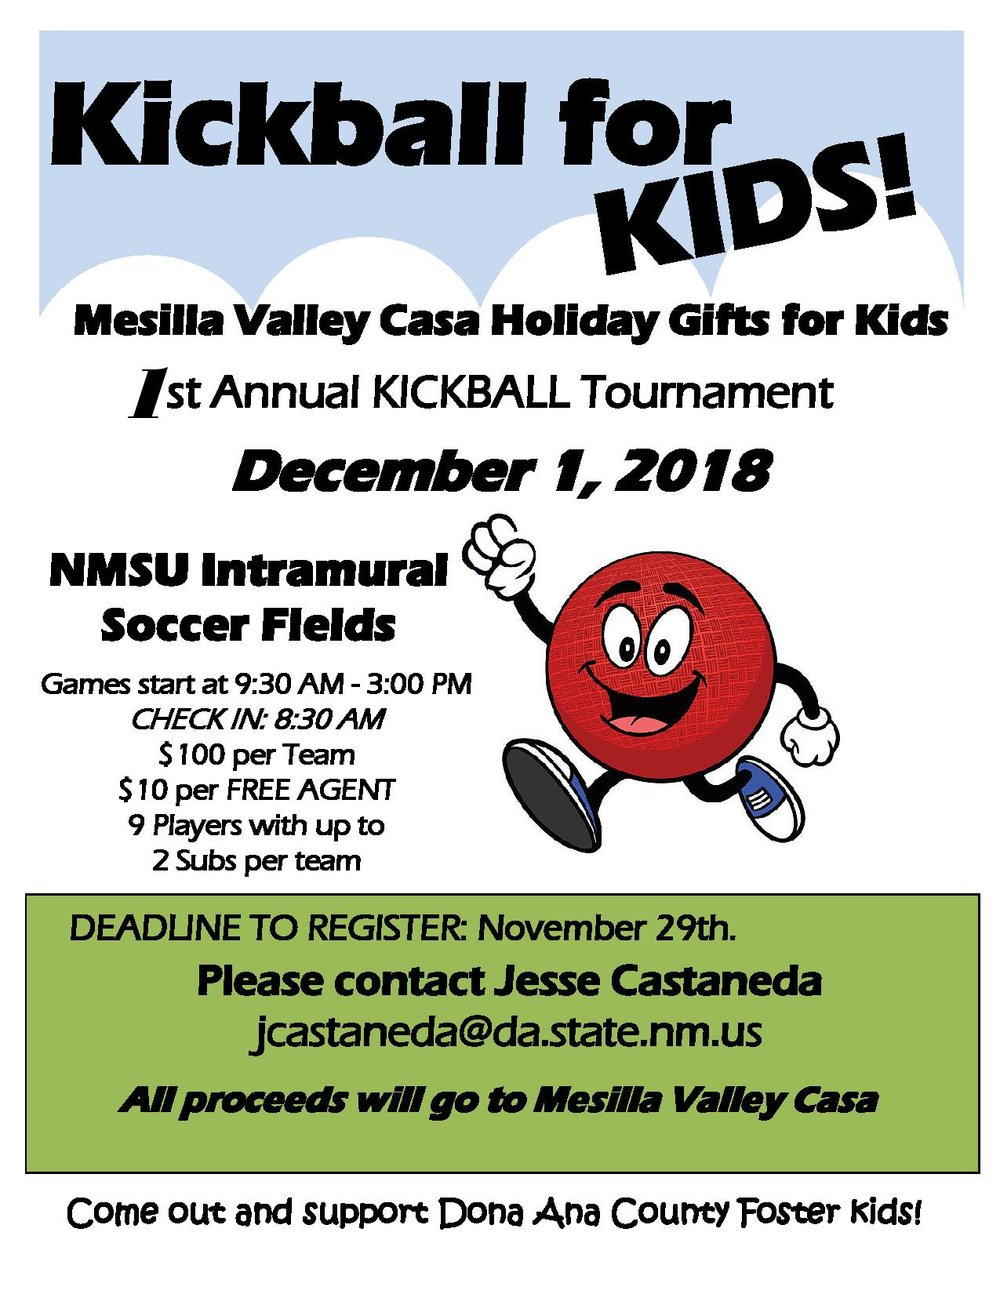 Kickball for kids - updated flyer-page-001.jpg